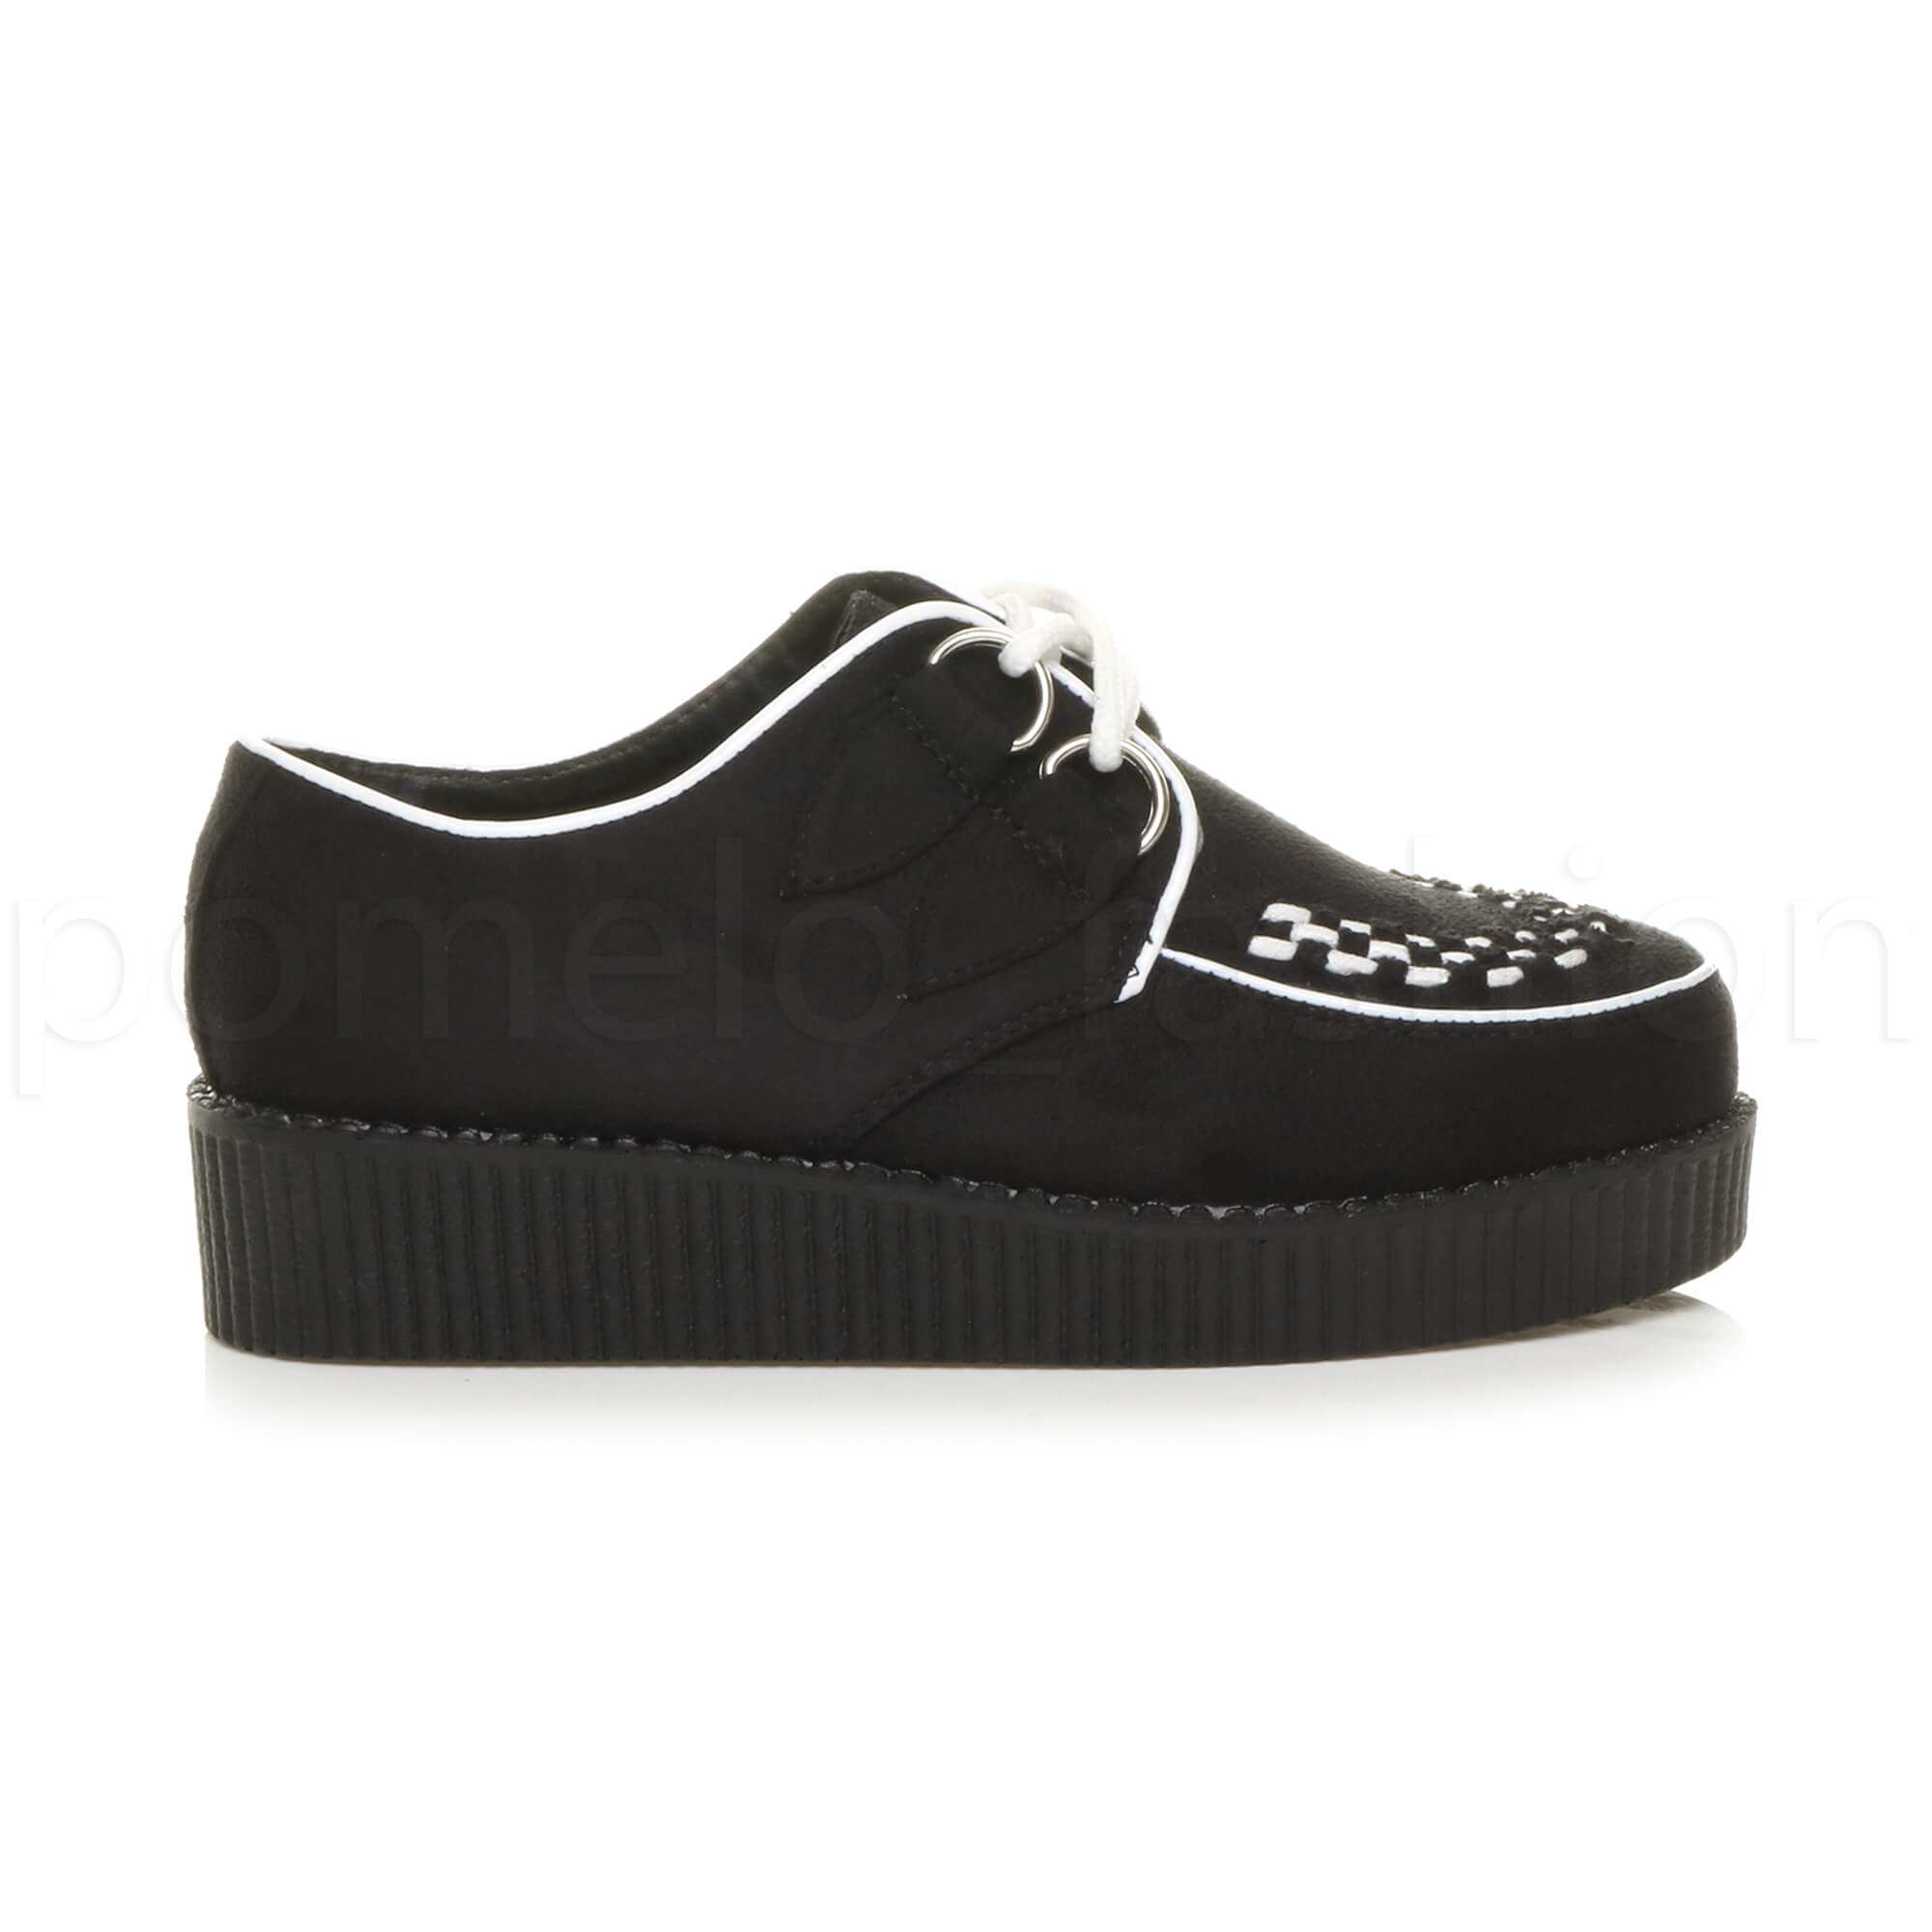 WOMENS-LADIES-GIRLS-PLATFORM-WEDGE-LACE-UP-GOTH-PUNK-CREEPERS-SHOES-BOOTS-SIZE